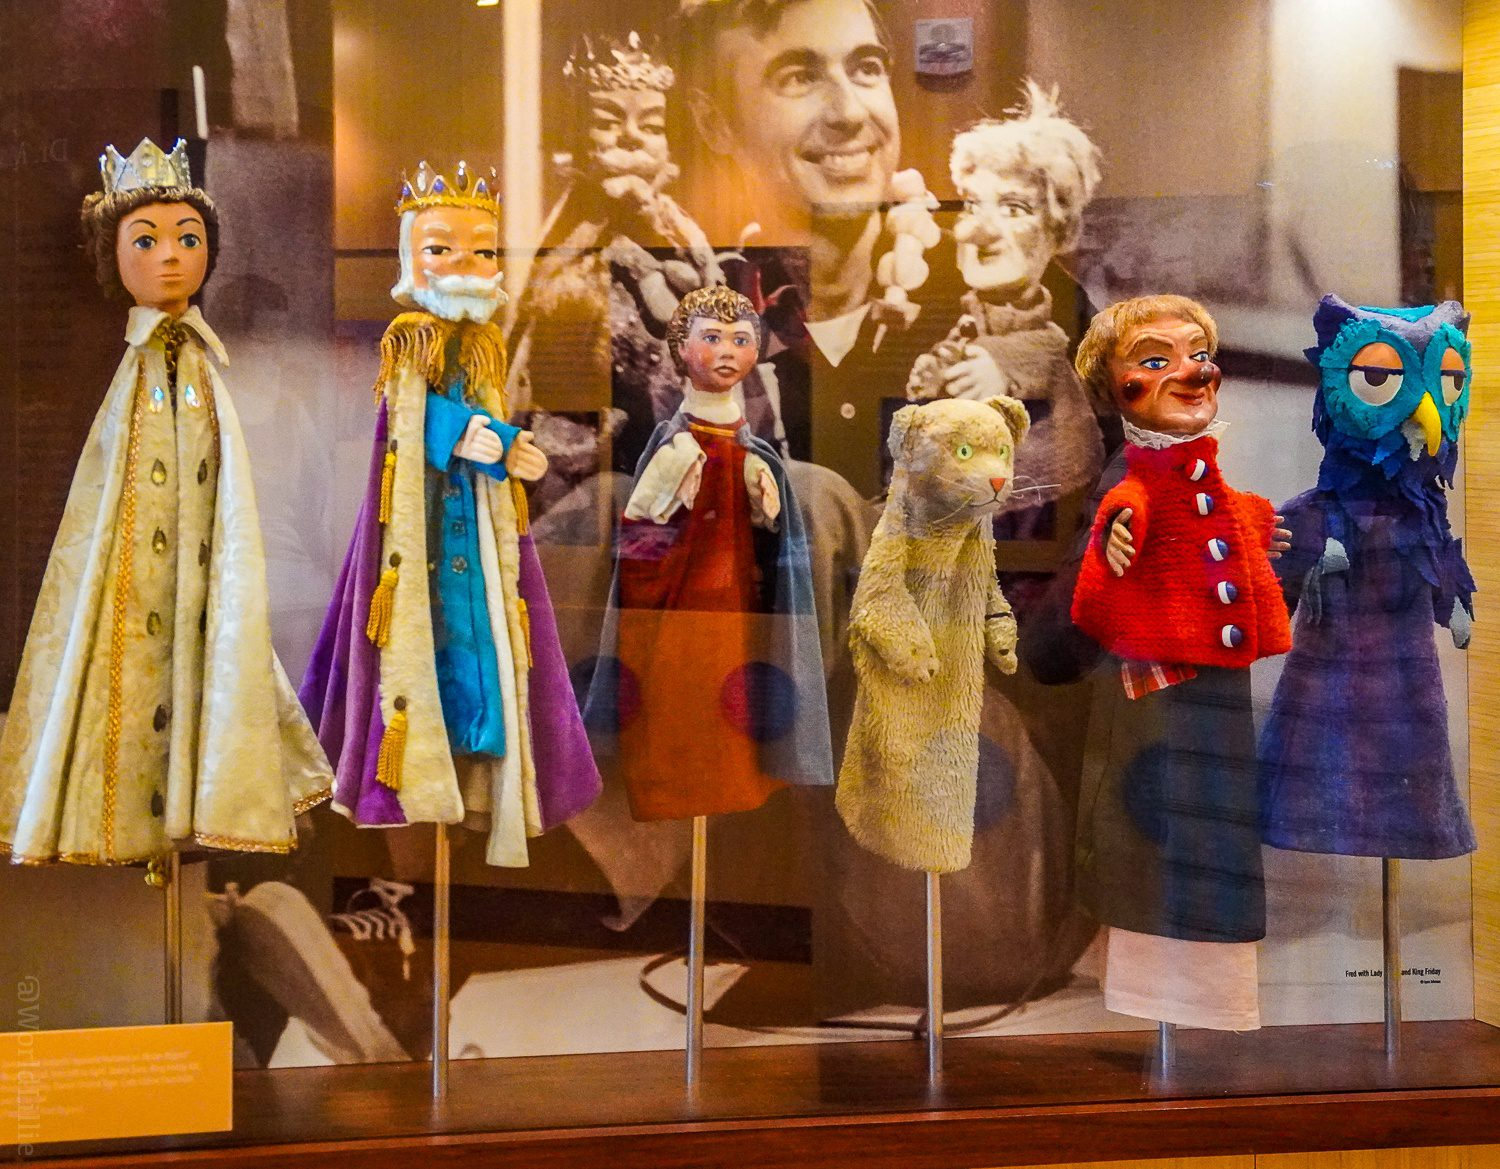 Seeing the Mister Rogers puppets in person took my breath away.